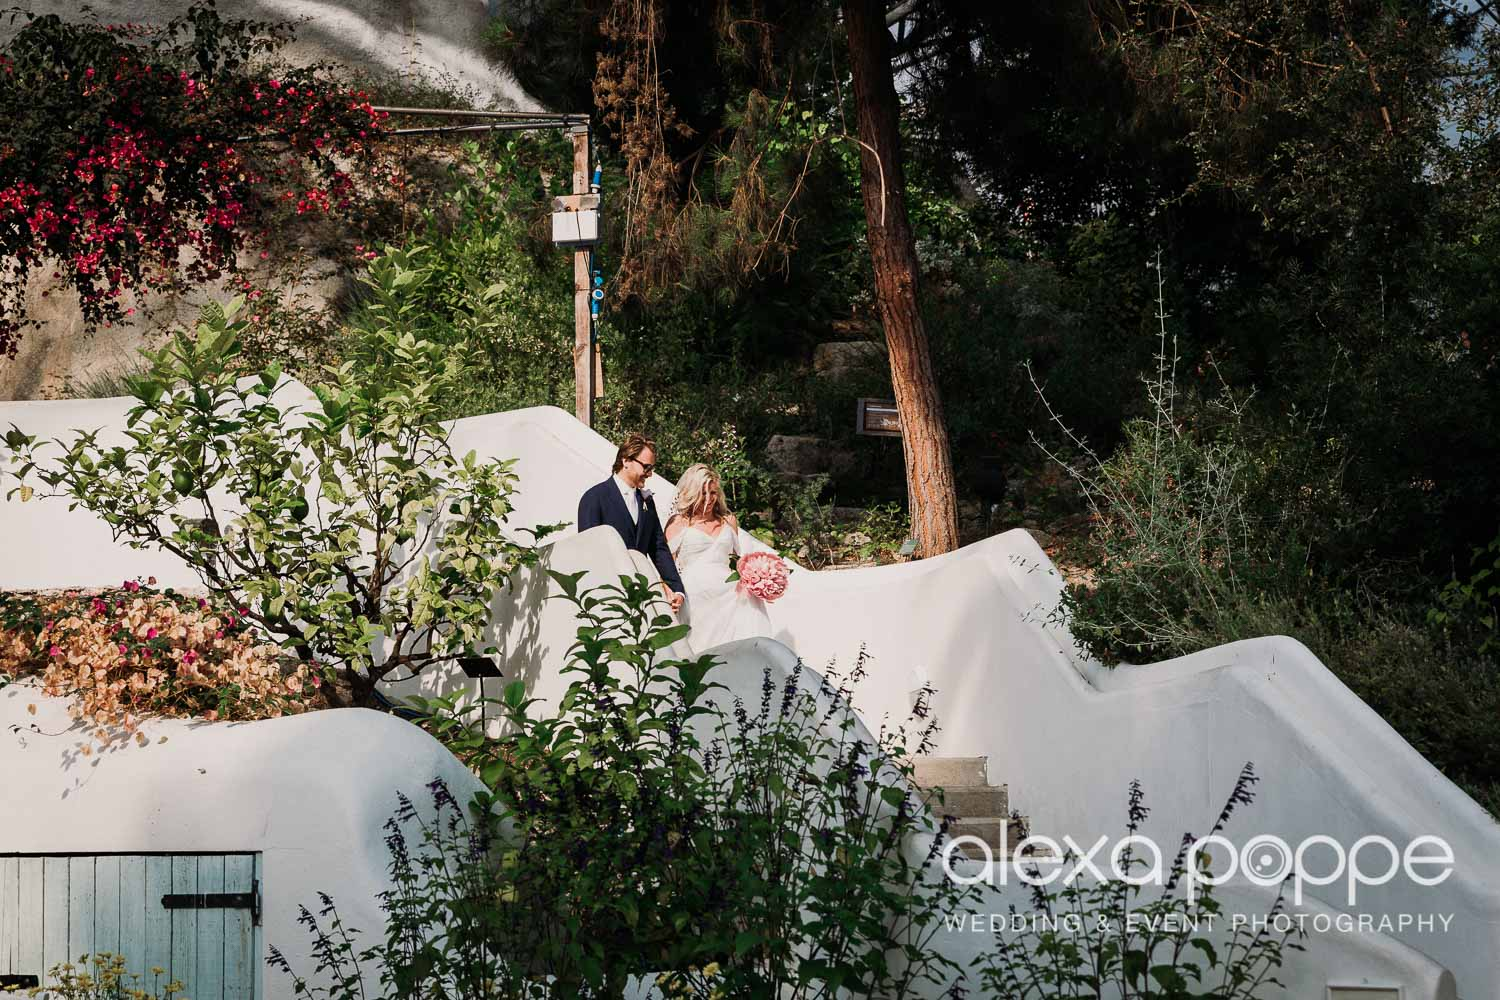 VA_wedding_edenproject_carnglaze_63.jpg